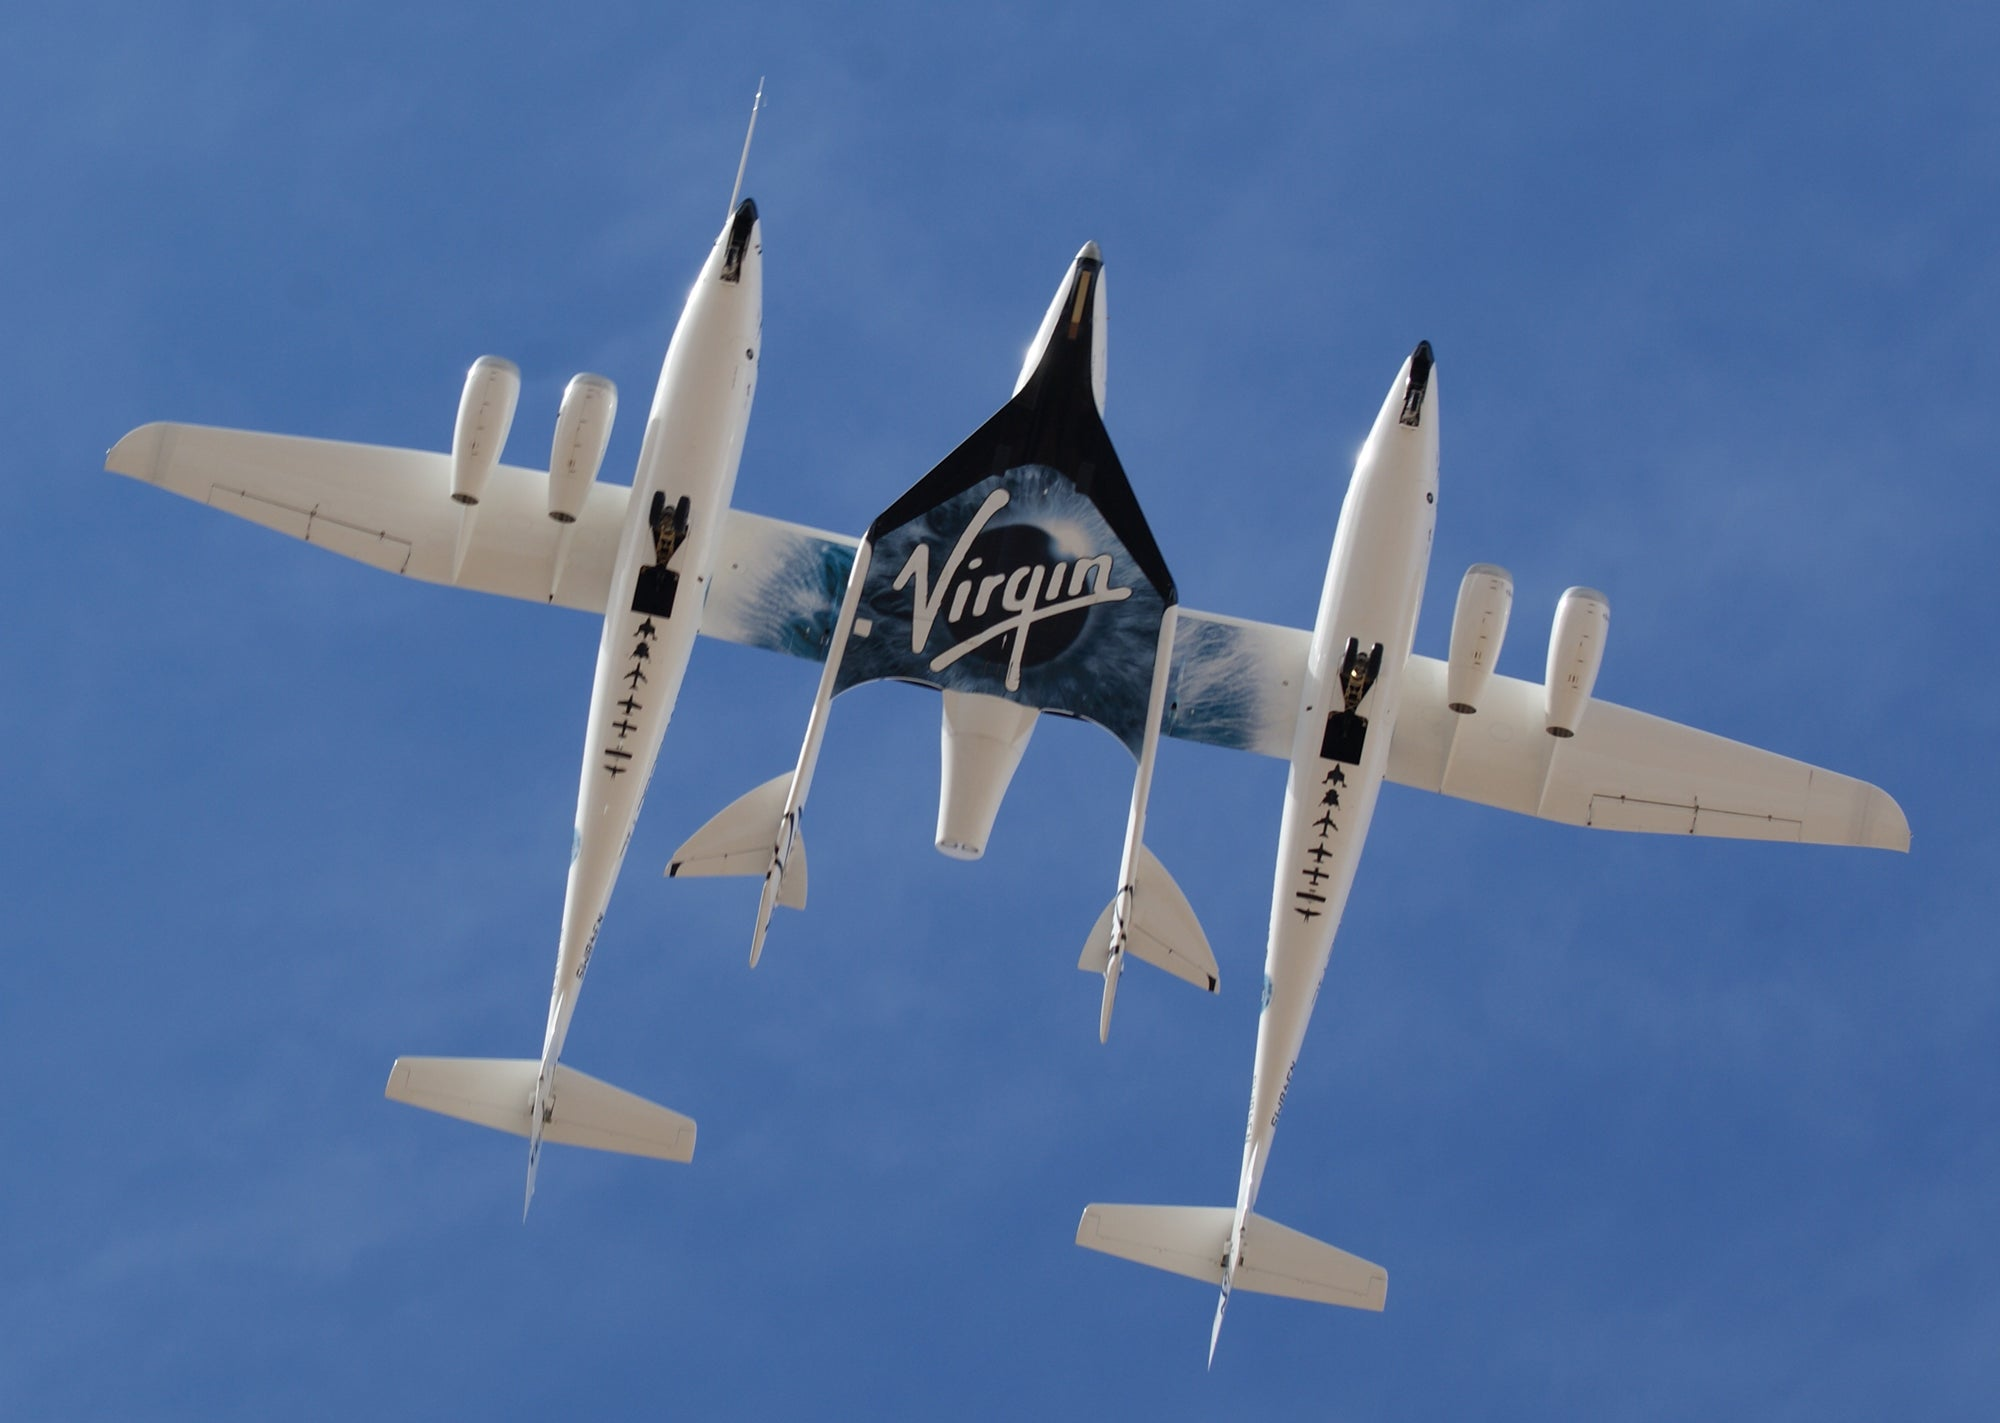 What's Next For Virgin Galactic?